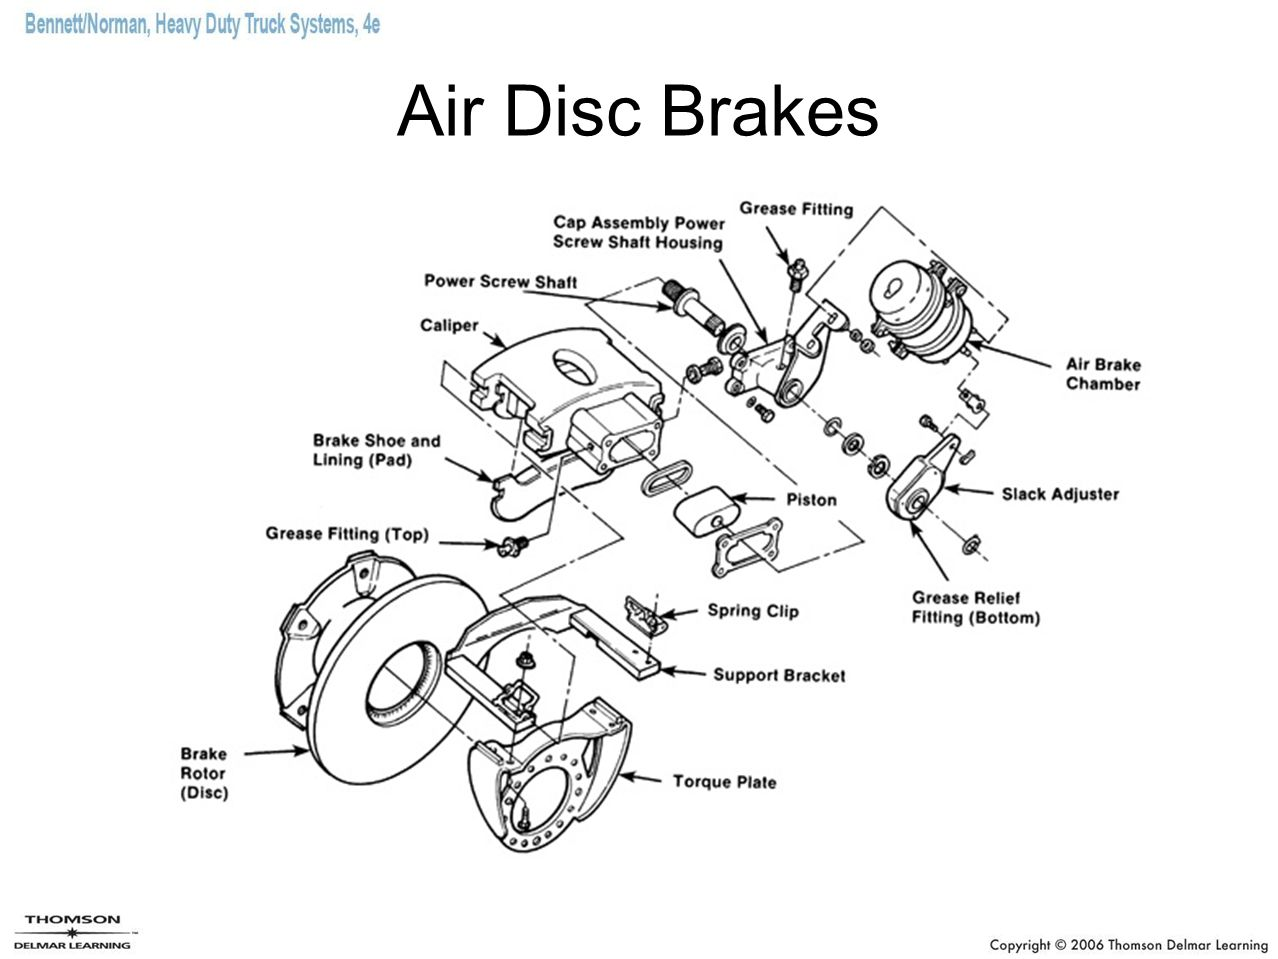 Chapter 31 Air Brake Servicing Ppt Video Online Download Brakes Schematic 59 Disc